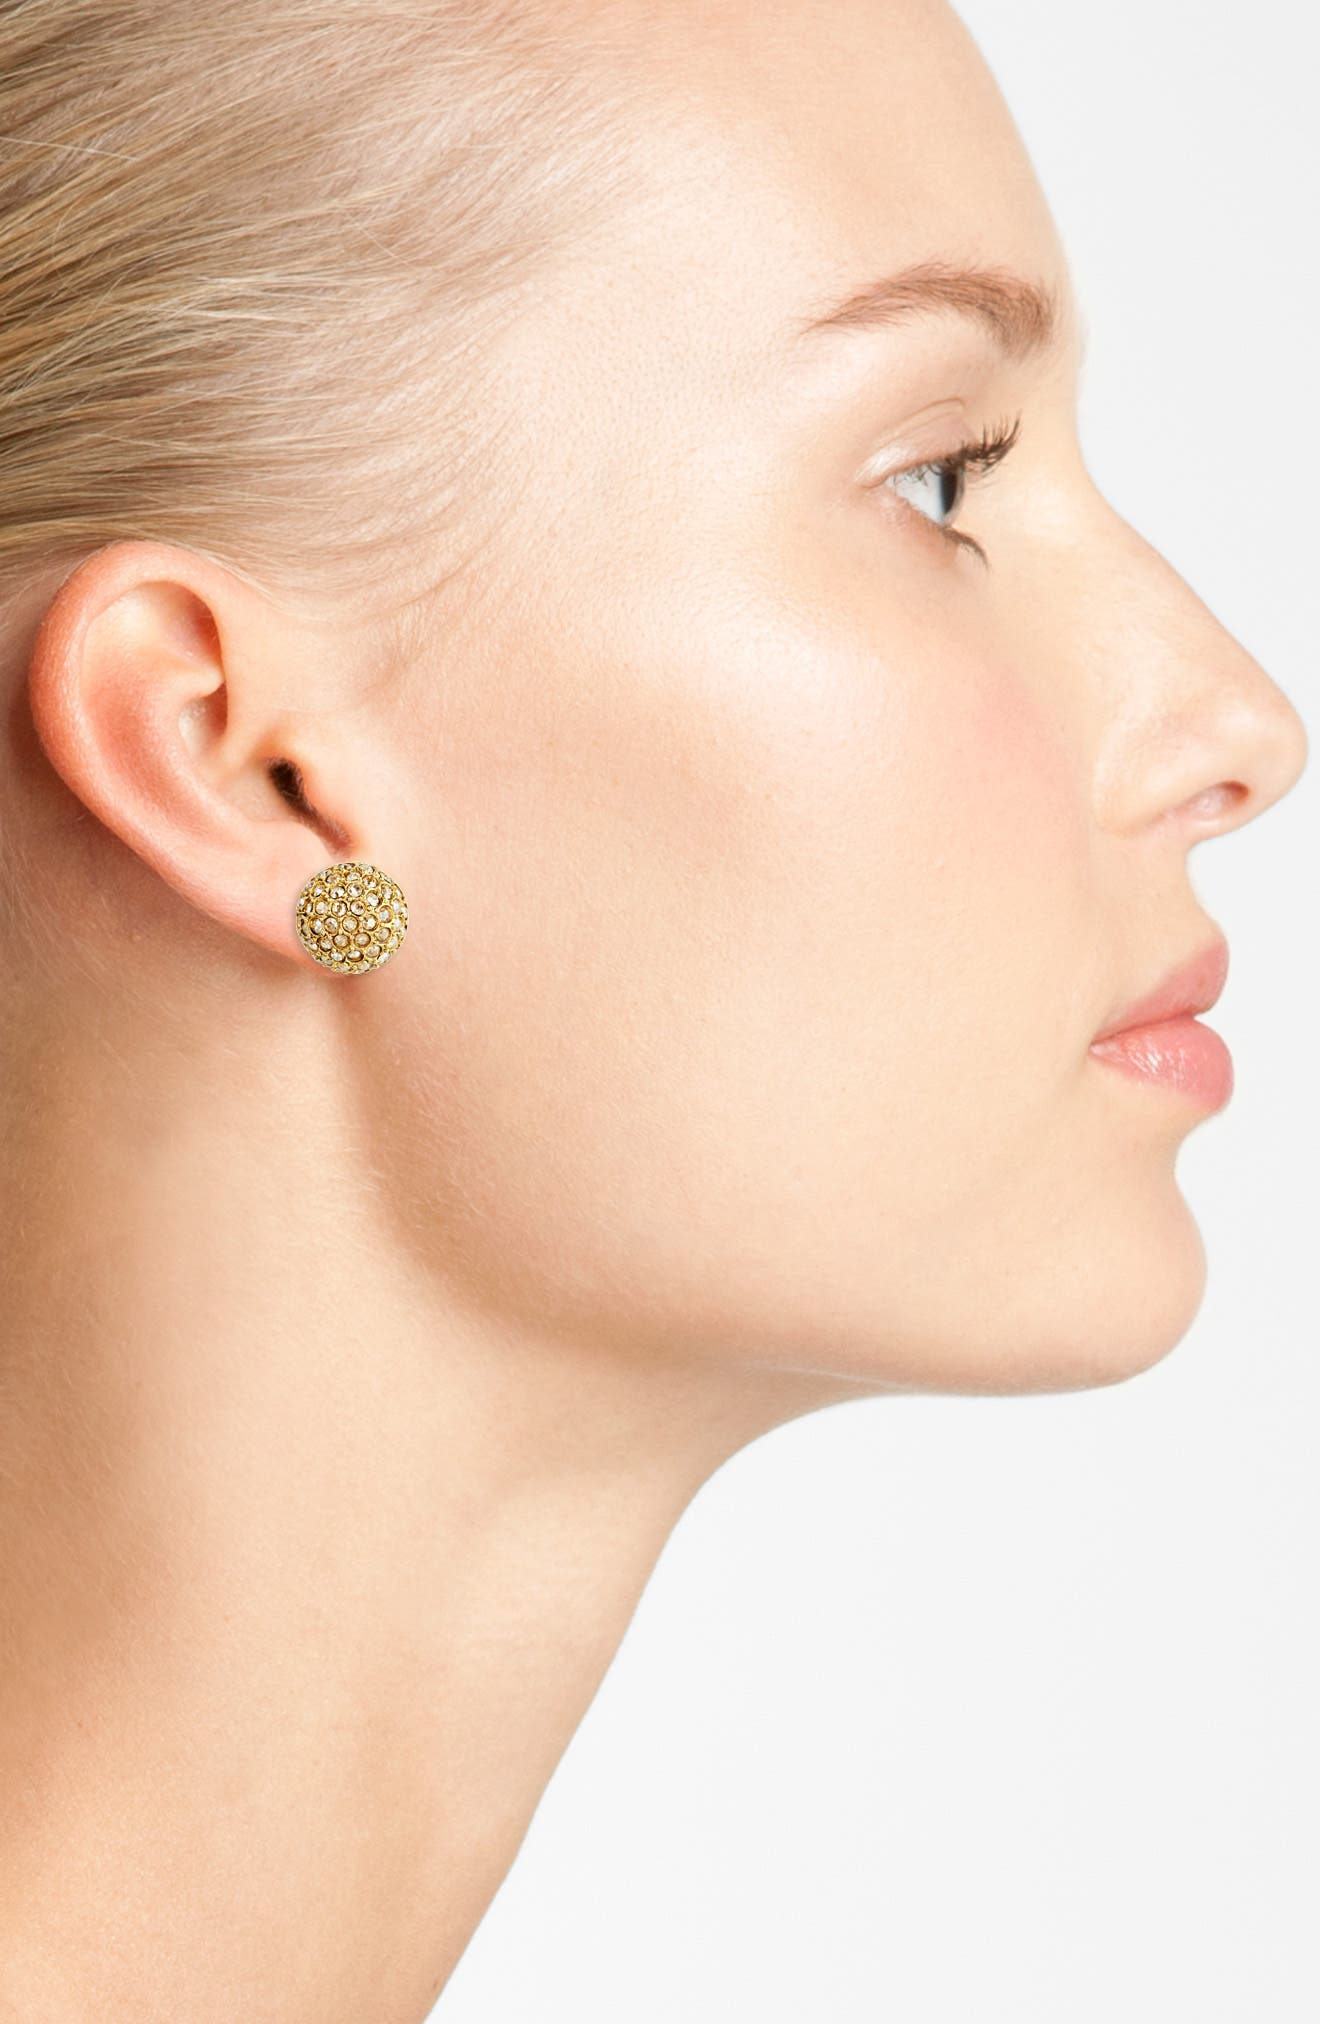 Dome Stud Earrings,                             Alternate thumbnail 2, color,                             Crystal Gold Shadow